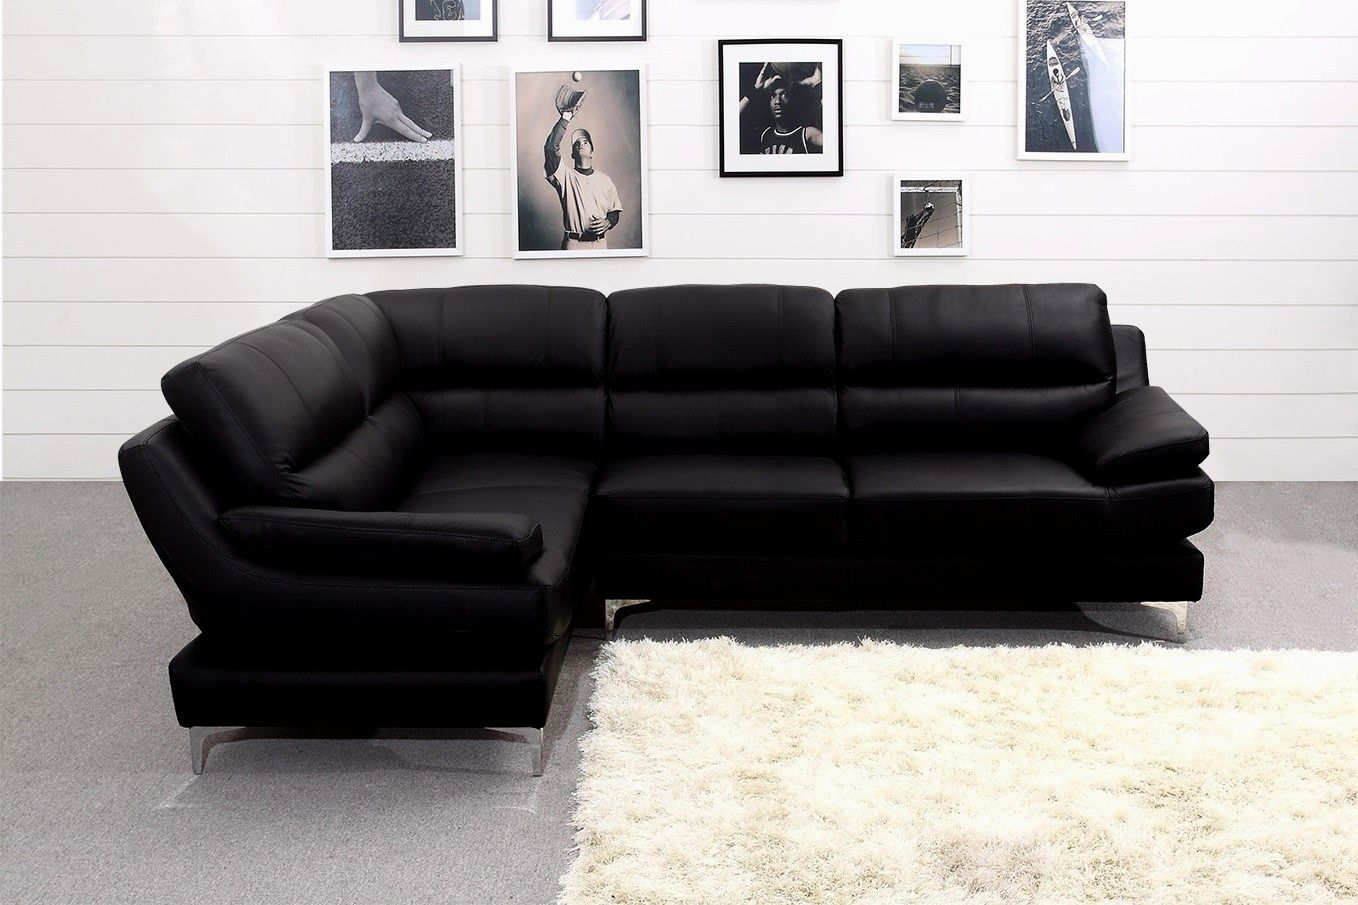 luxury black sectional sofa for cheap ideas-Elegant Black Sectional sofa for Cheap Plan